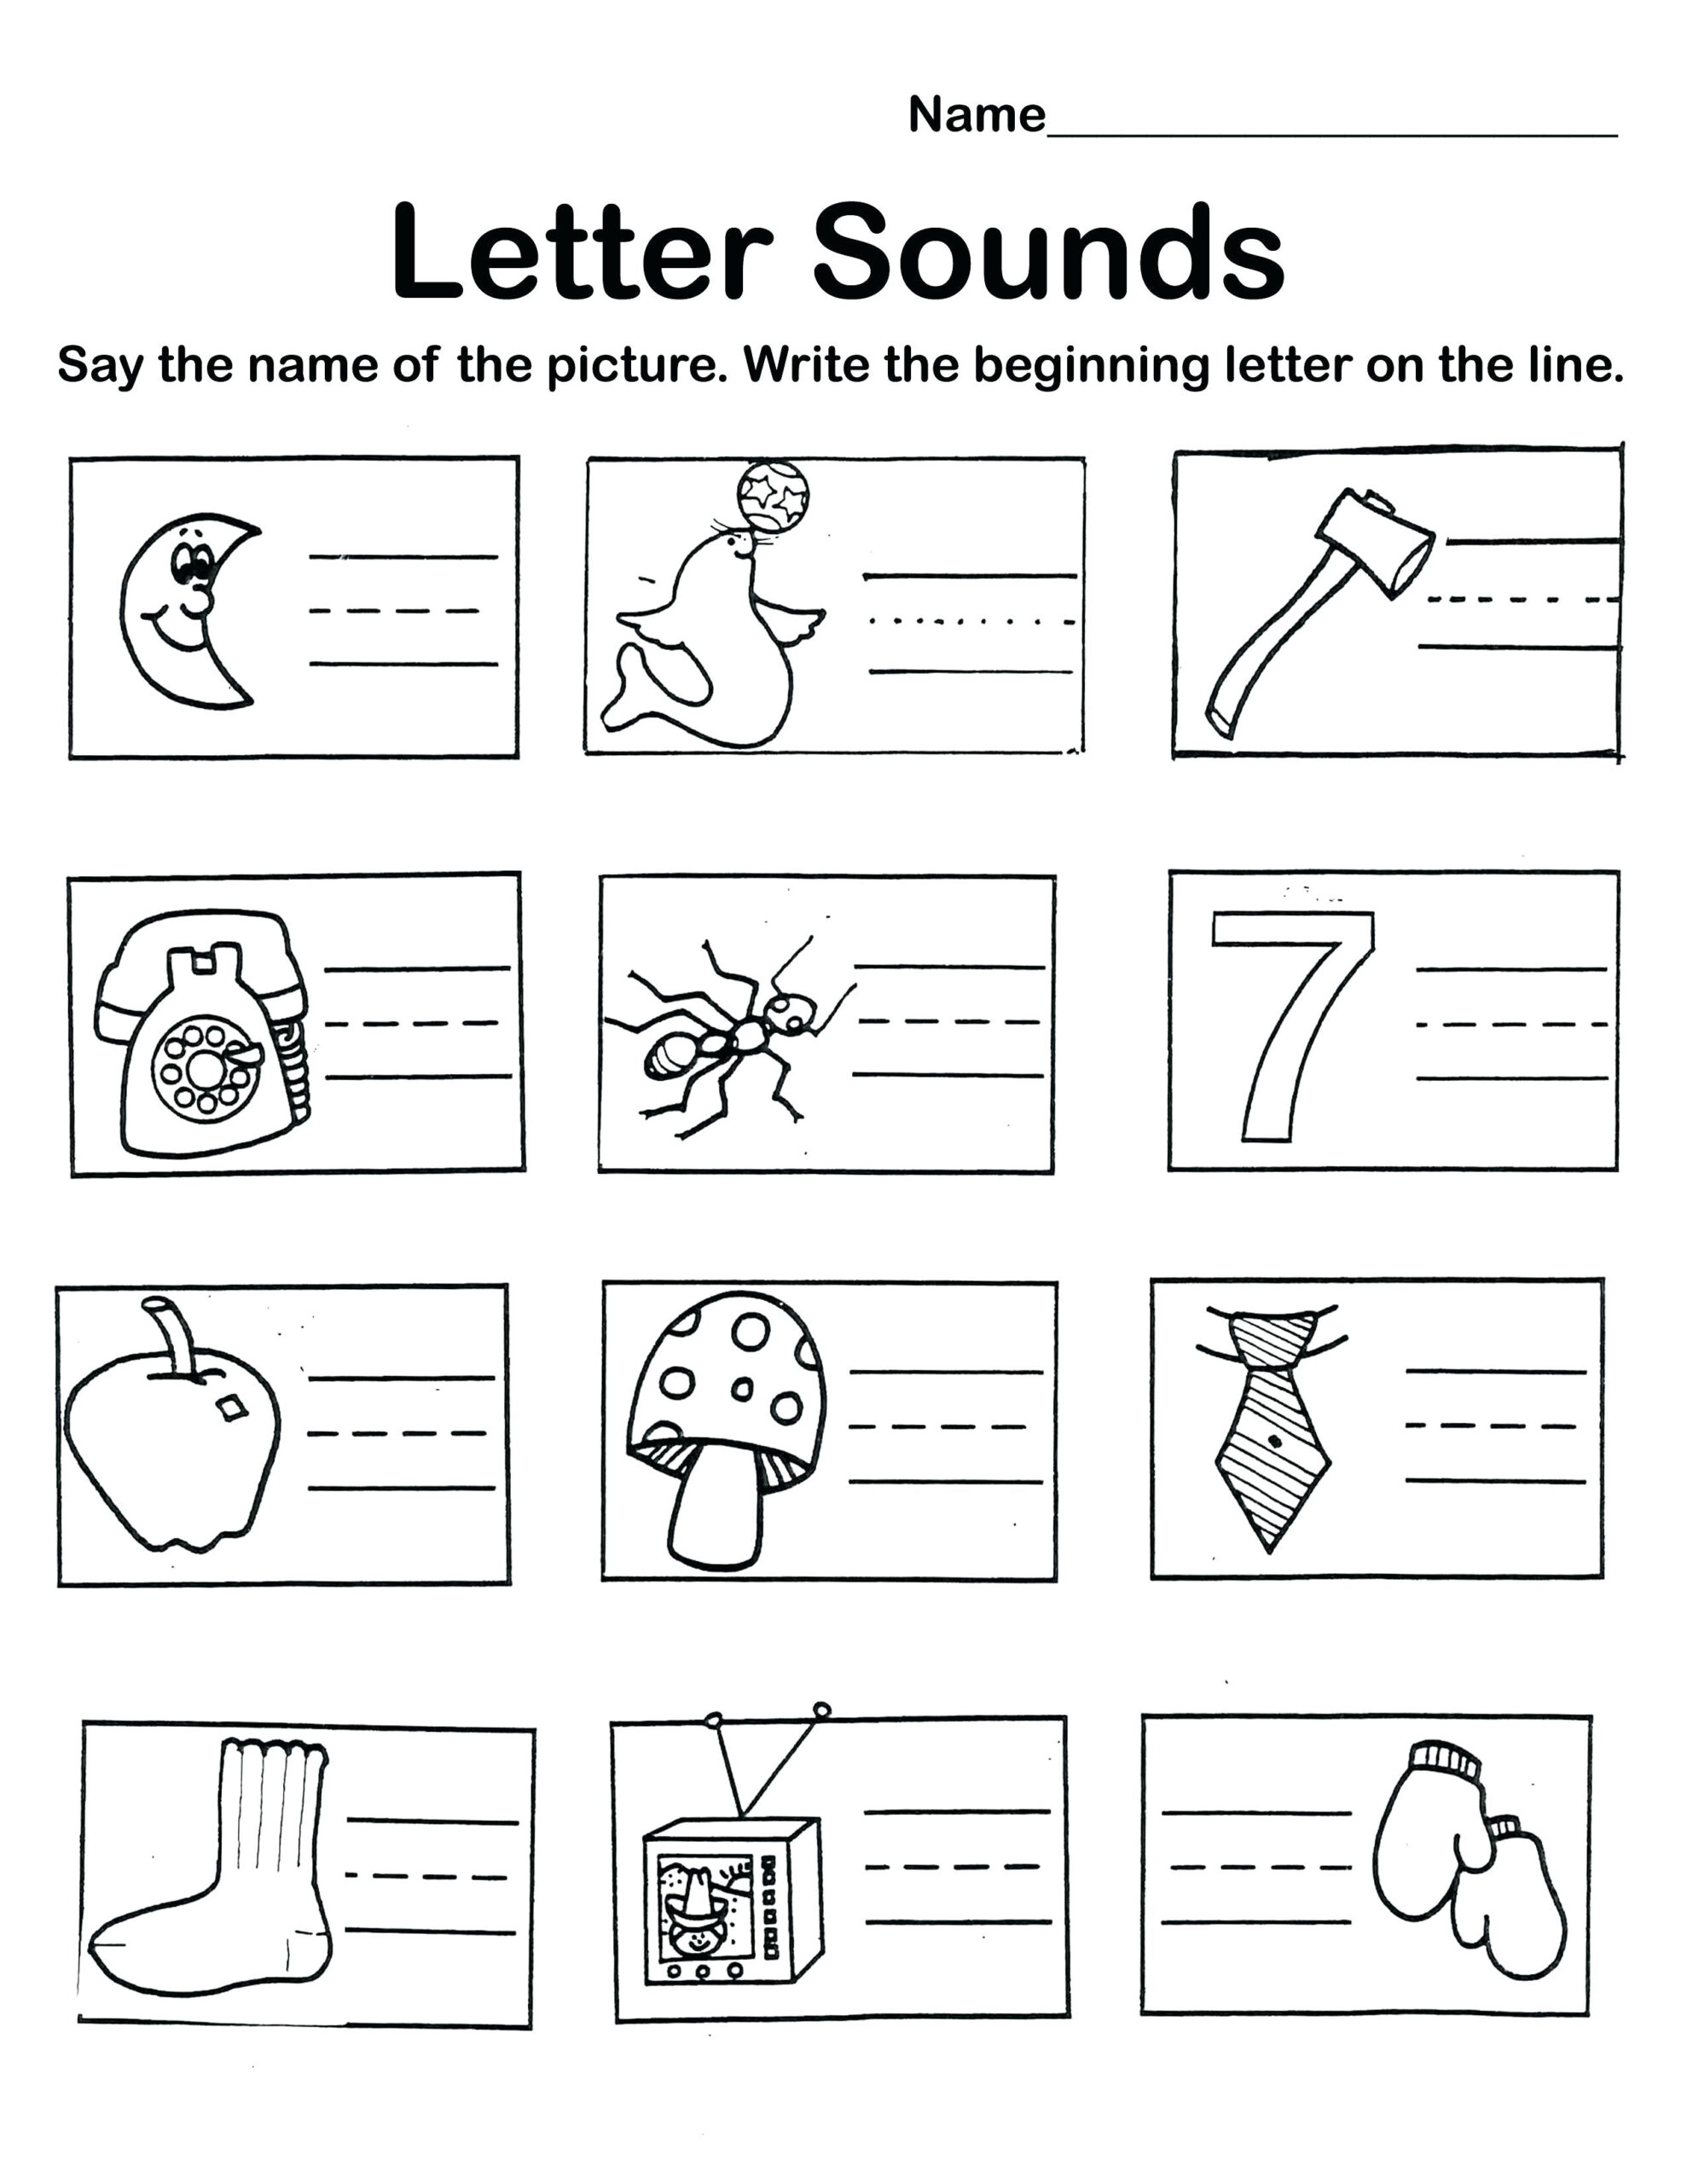 Letter Writing Practice Y Worksheet Kindergarten Able regarding Letter Sounds Worksheets Pdf